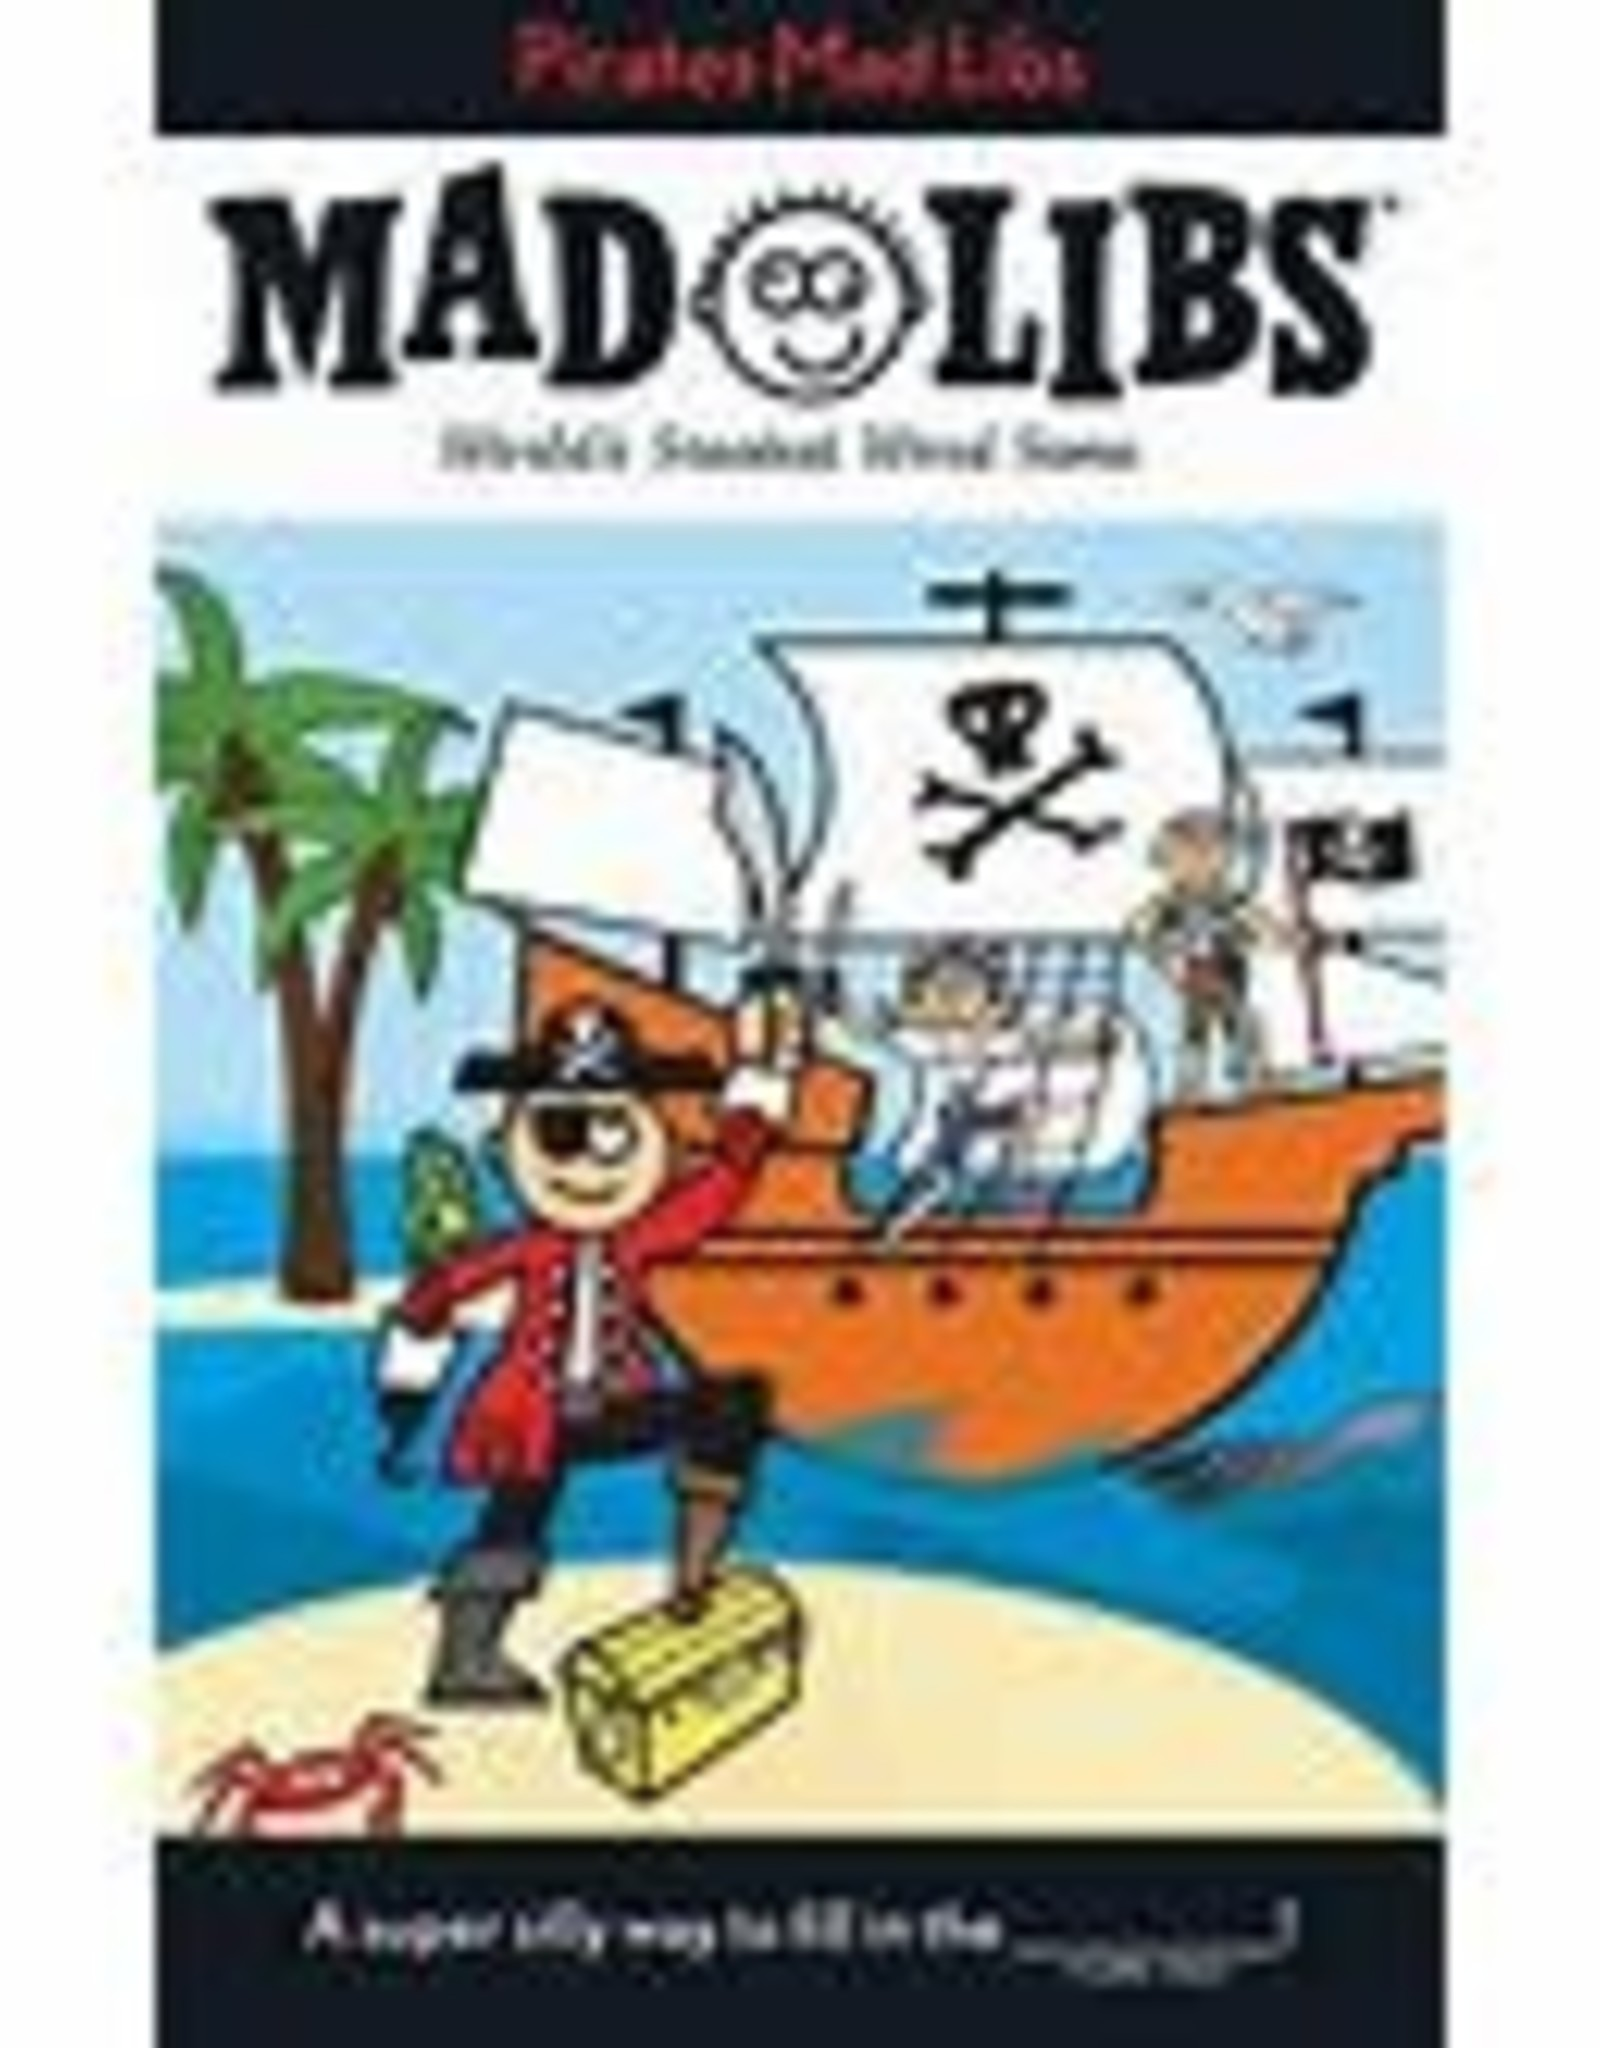 MadLibs Madlibs, Pirate